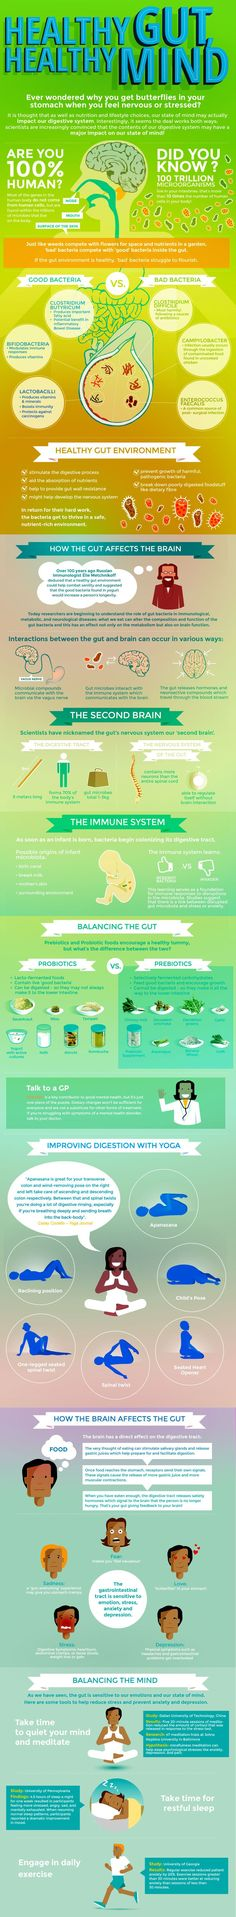 Scientific research shows that bacteria in our digestive systems affect our brains. The microbiome in our guts, populated by billions of bacteria, appears to play a significant role not only in our digestive health, but also our mental health. How Gut Bacteria Affects The Brain And Body. [infographic]